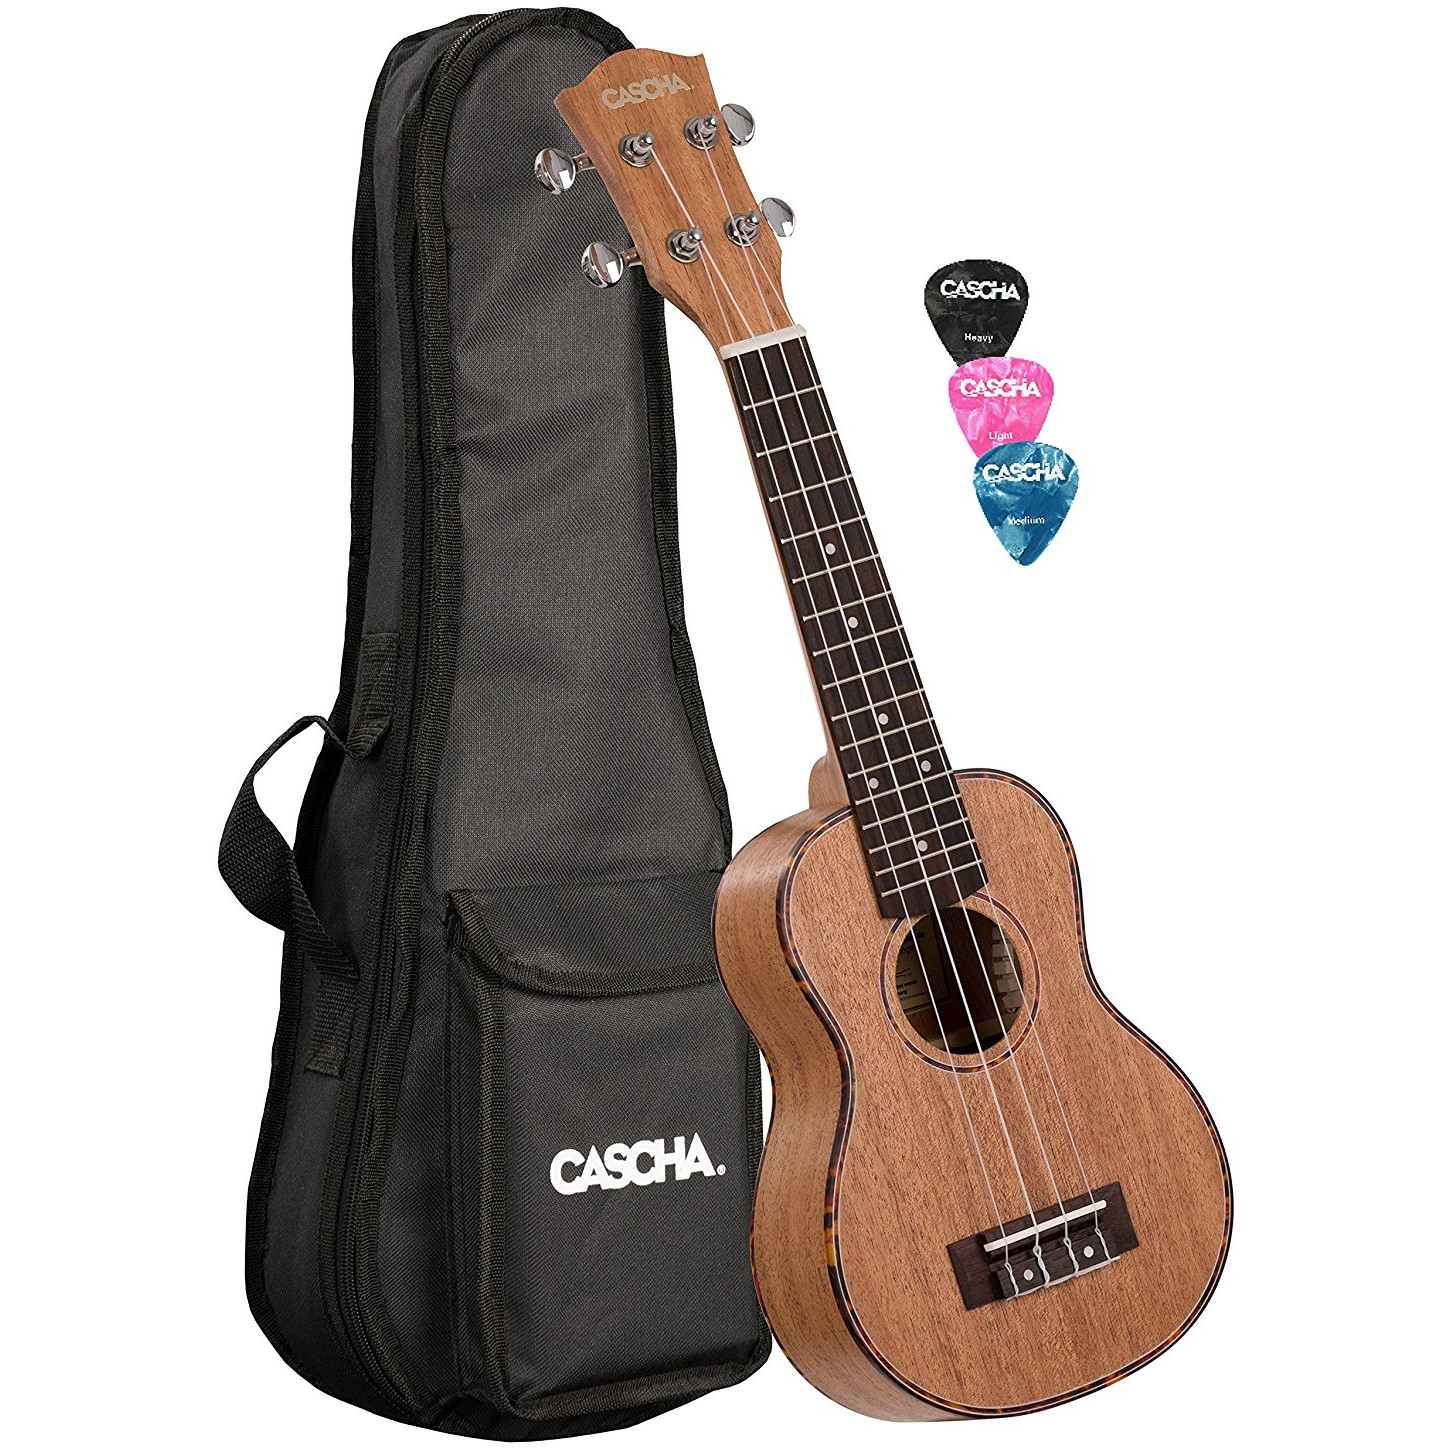 Cascha HH 2026 premium soprano ukulele with bag and plectrums